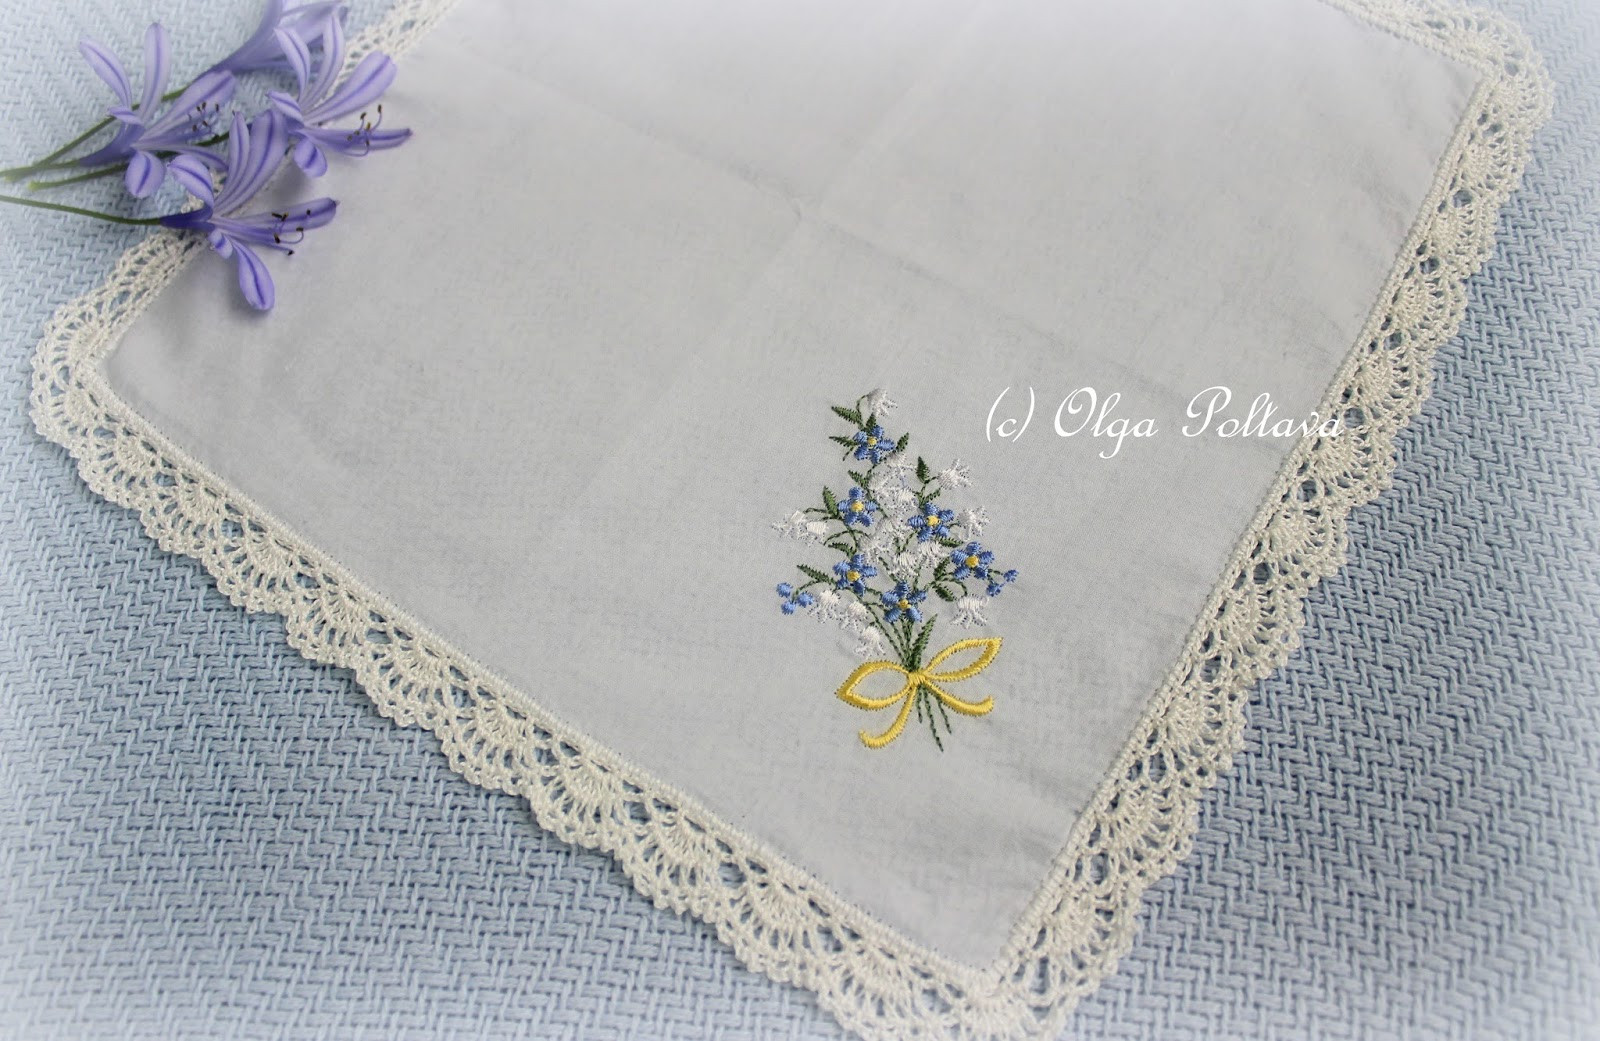 Lacy Crochet Lace Edging for a Handkerchief Simple